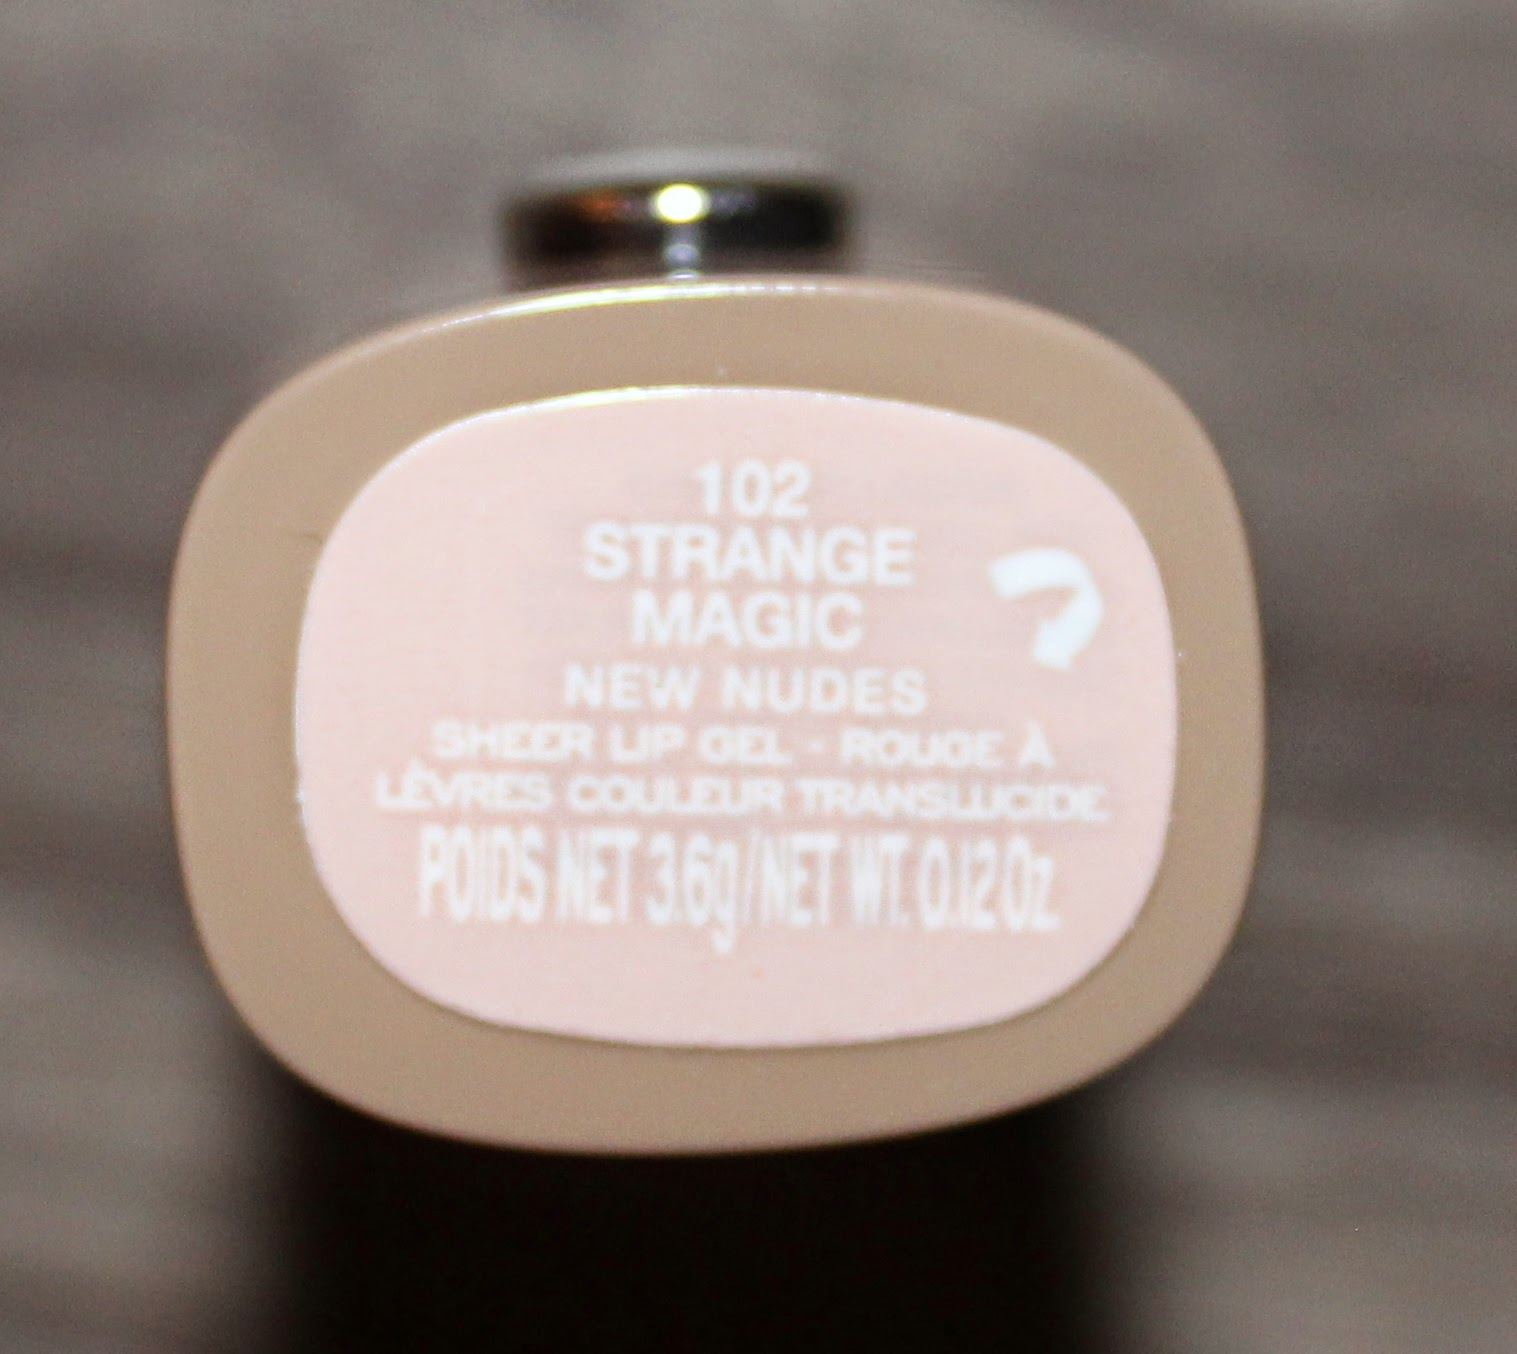 Marc Jacobs New Nudes Sheer Lip Gel in Strange Magic